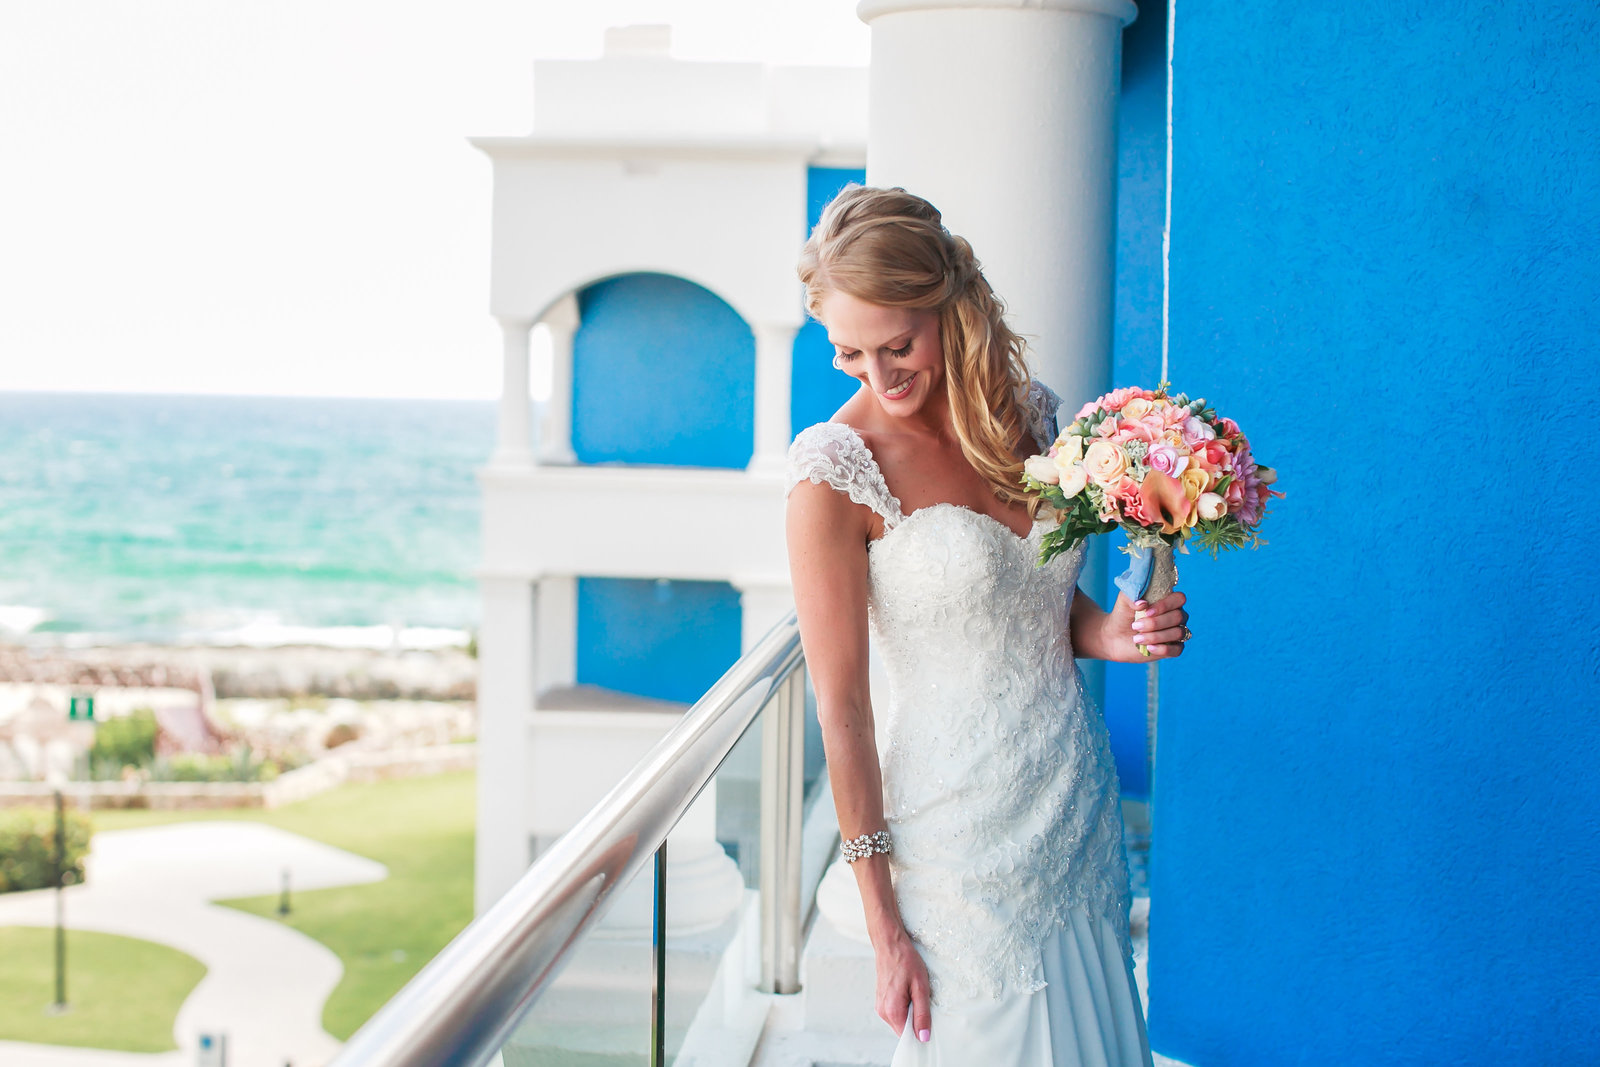 stacy-jordan-riviera-maya-wedding427130